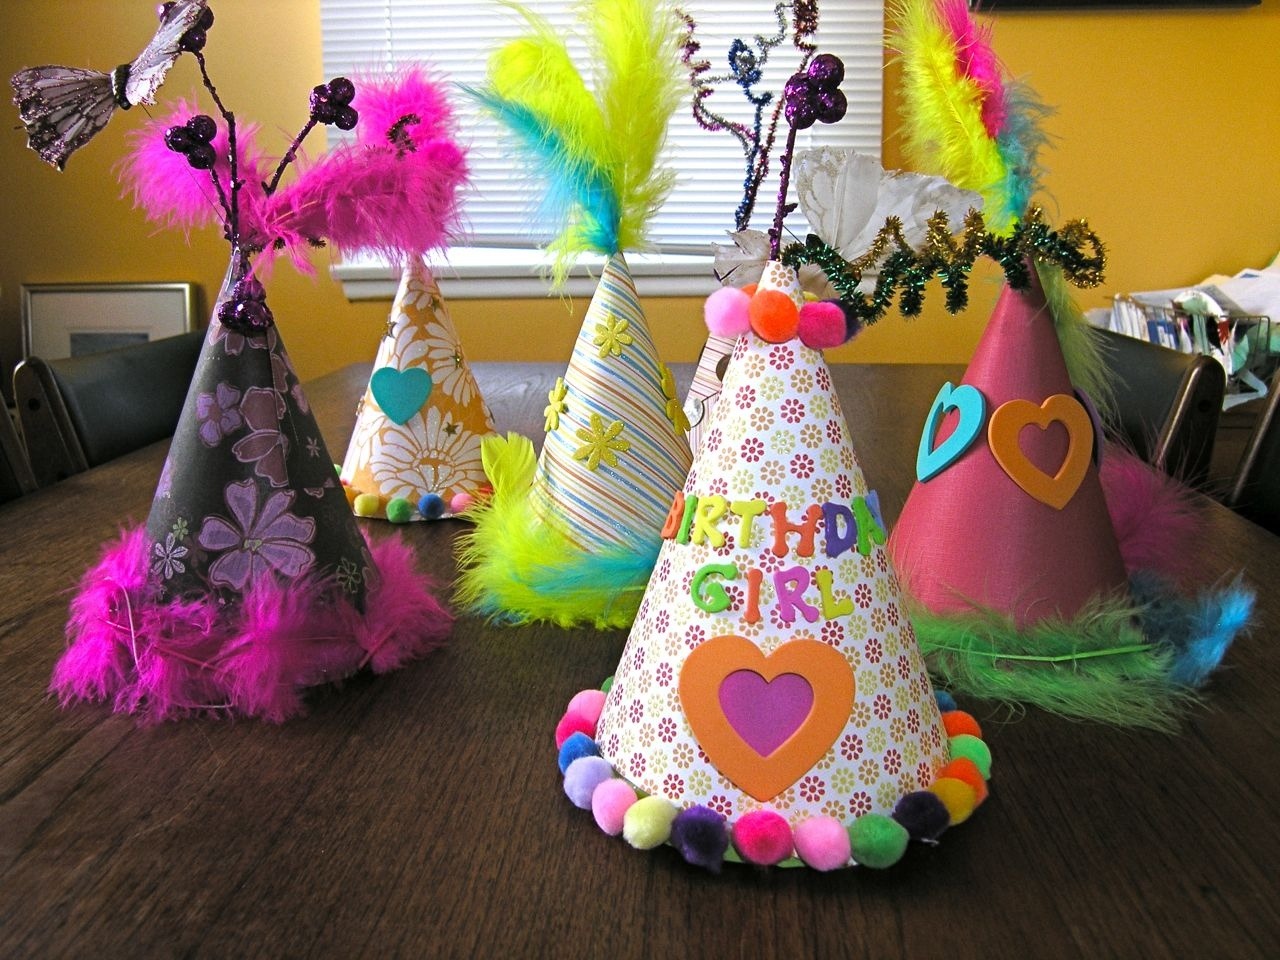 birthday crafts for kids to make ; kids-birthday-party-crafts-homi-craft-homi-craft-inspiring-for-birthday-crafts-for-kids-to-make